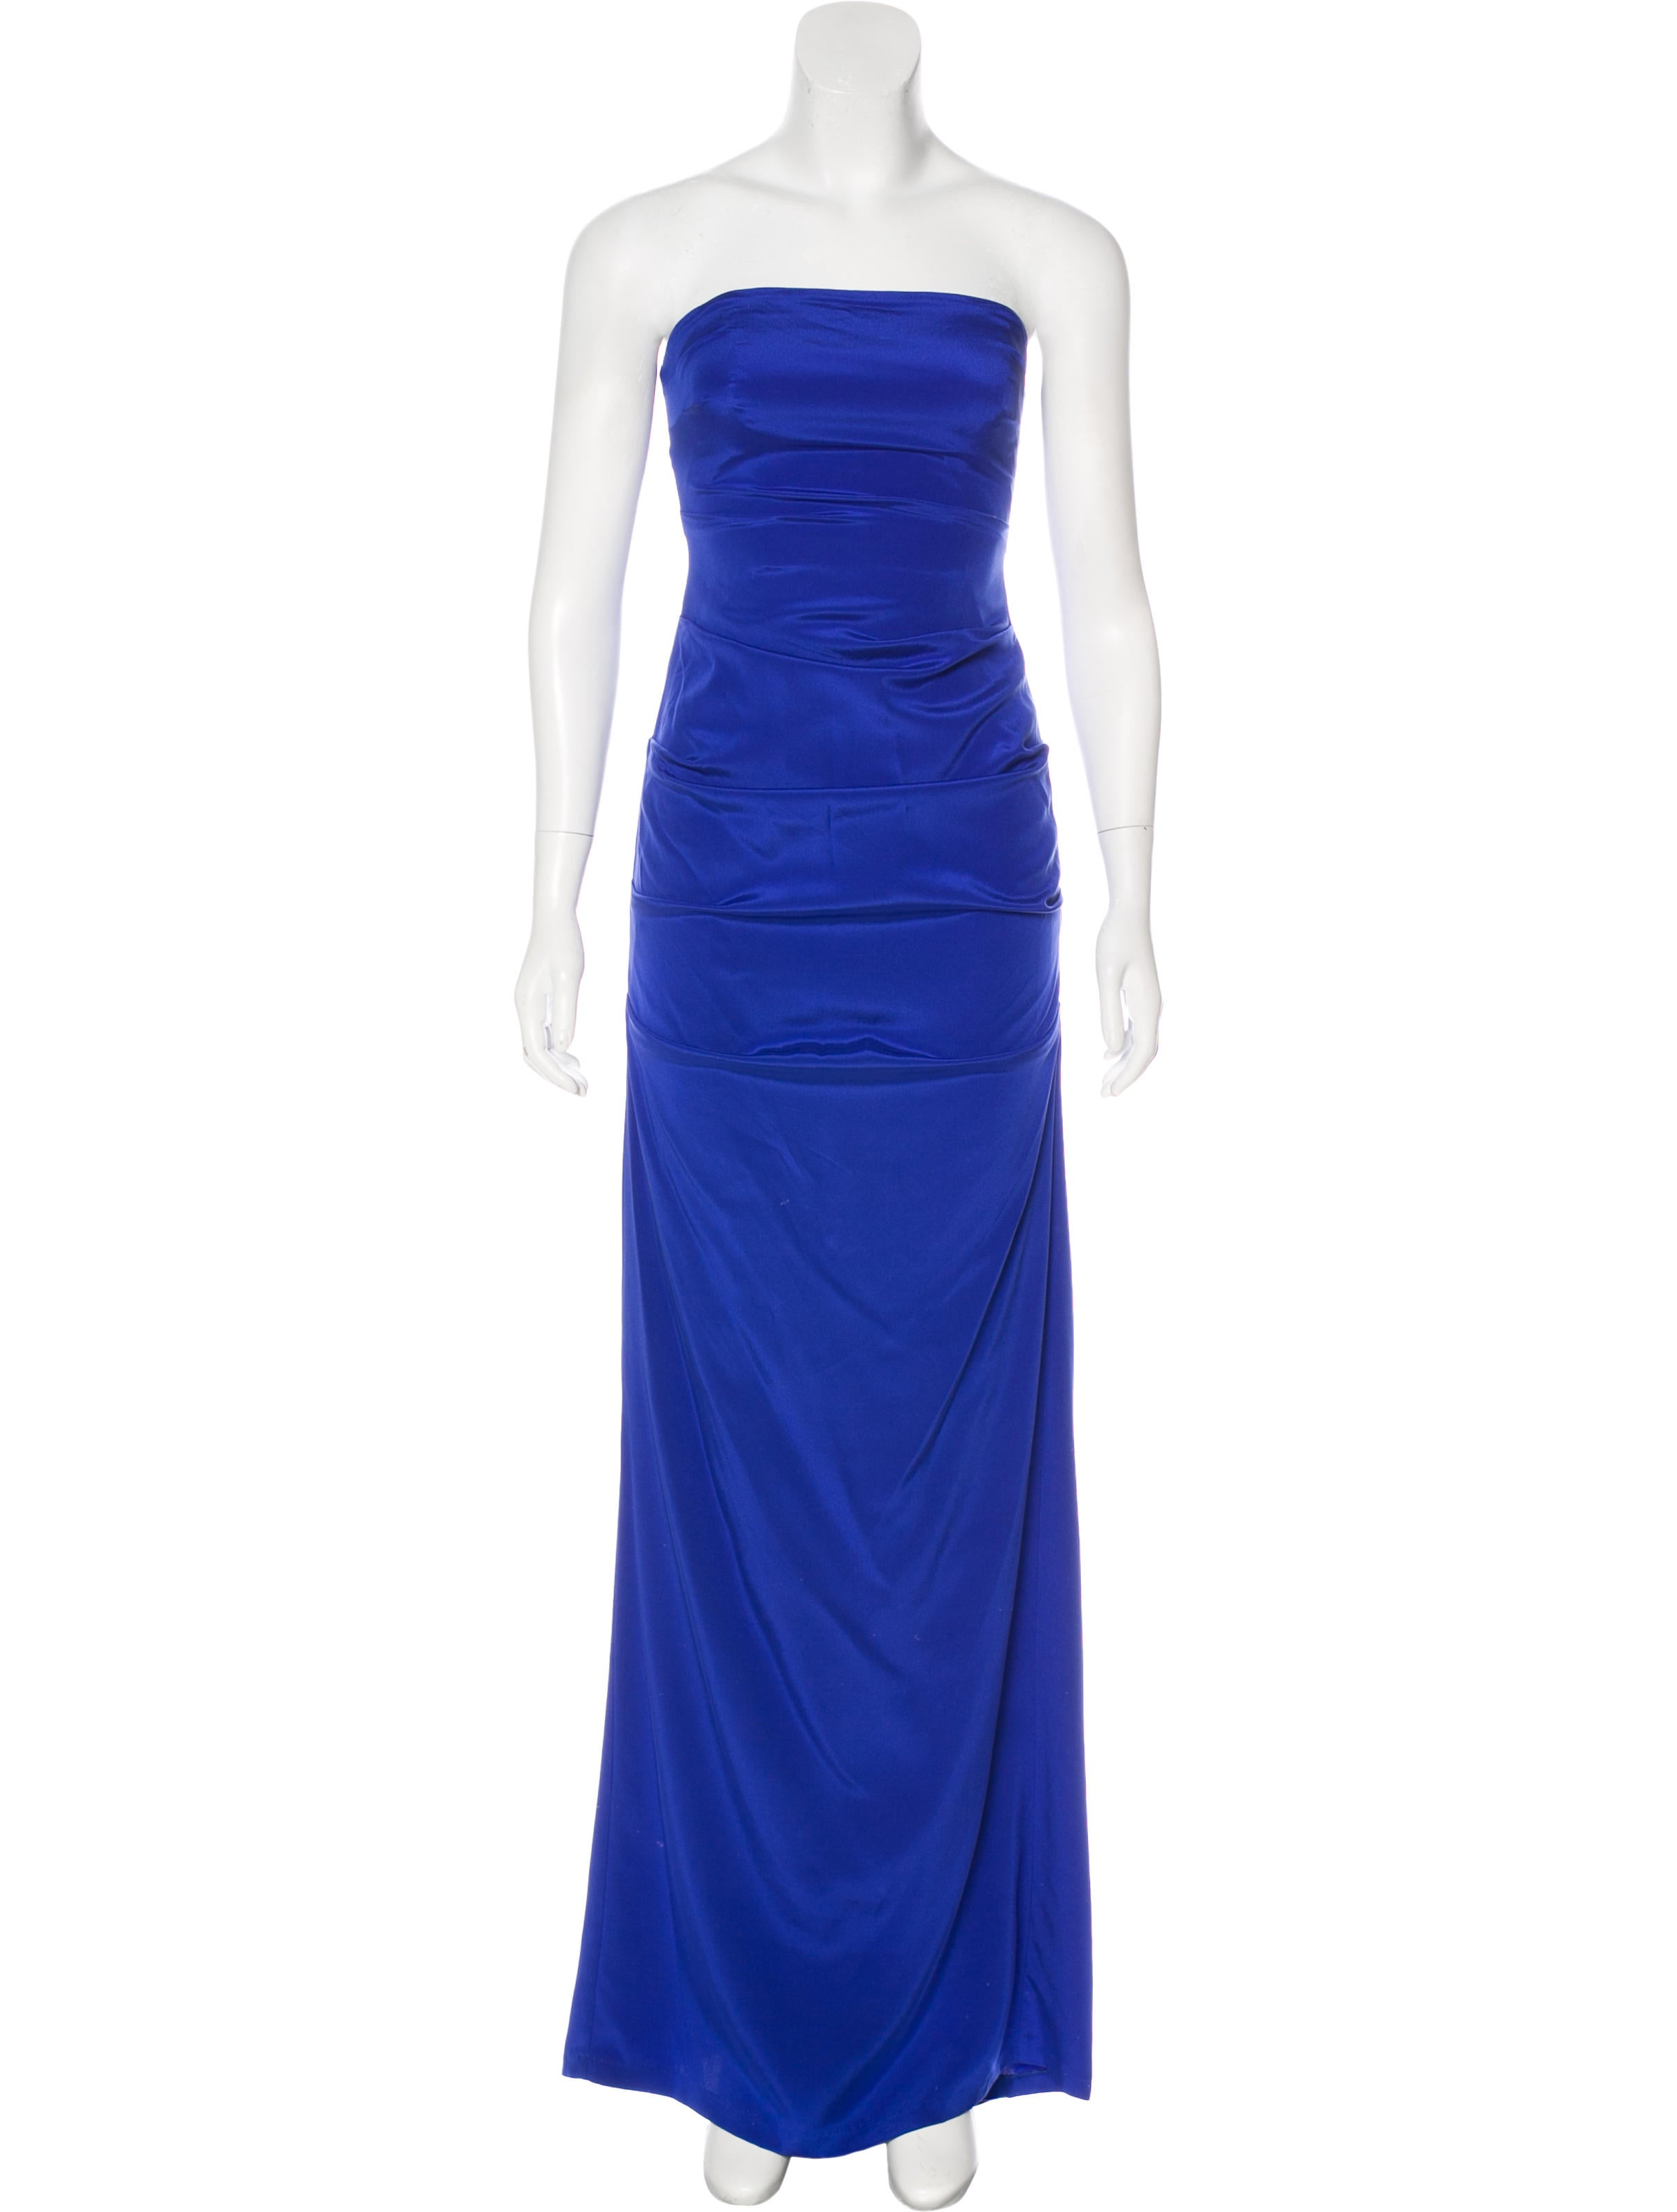 Nicole Miller Strapless Evening Gown - Clothing - WNI20885   The ...